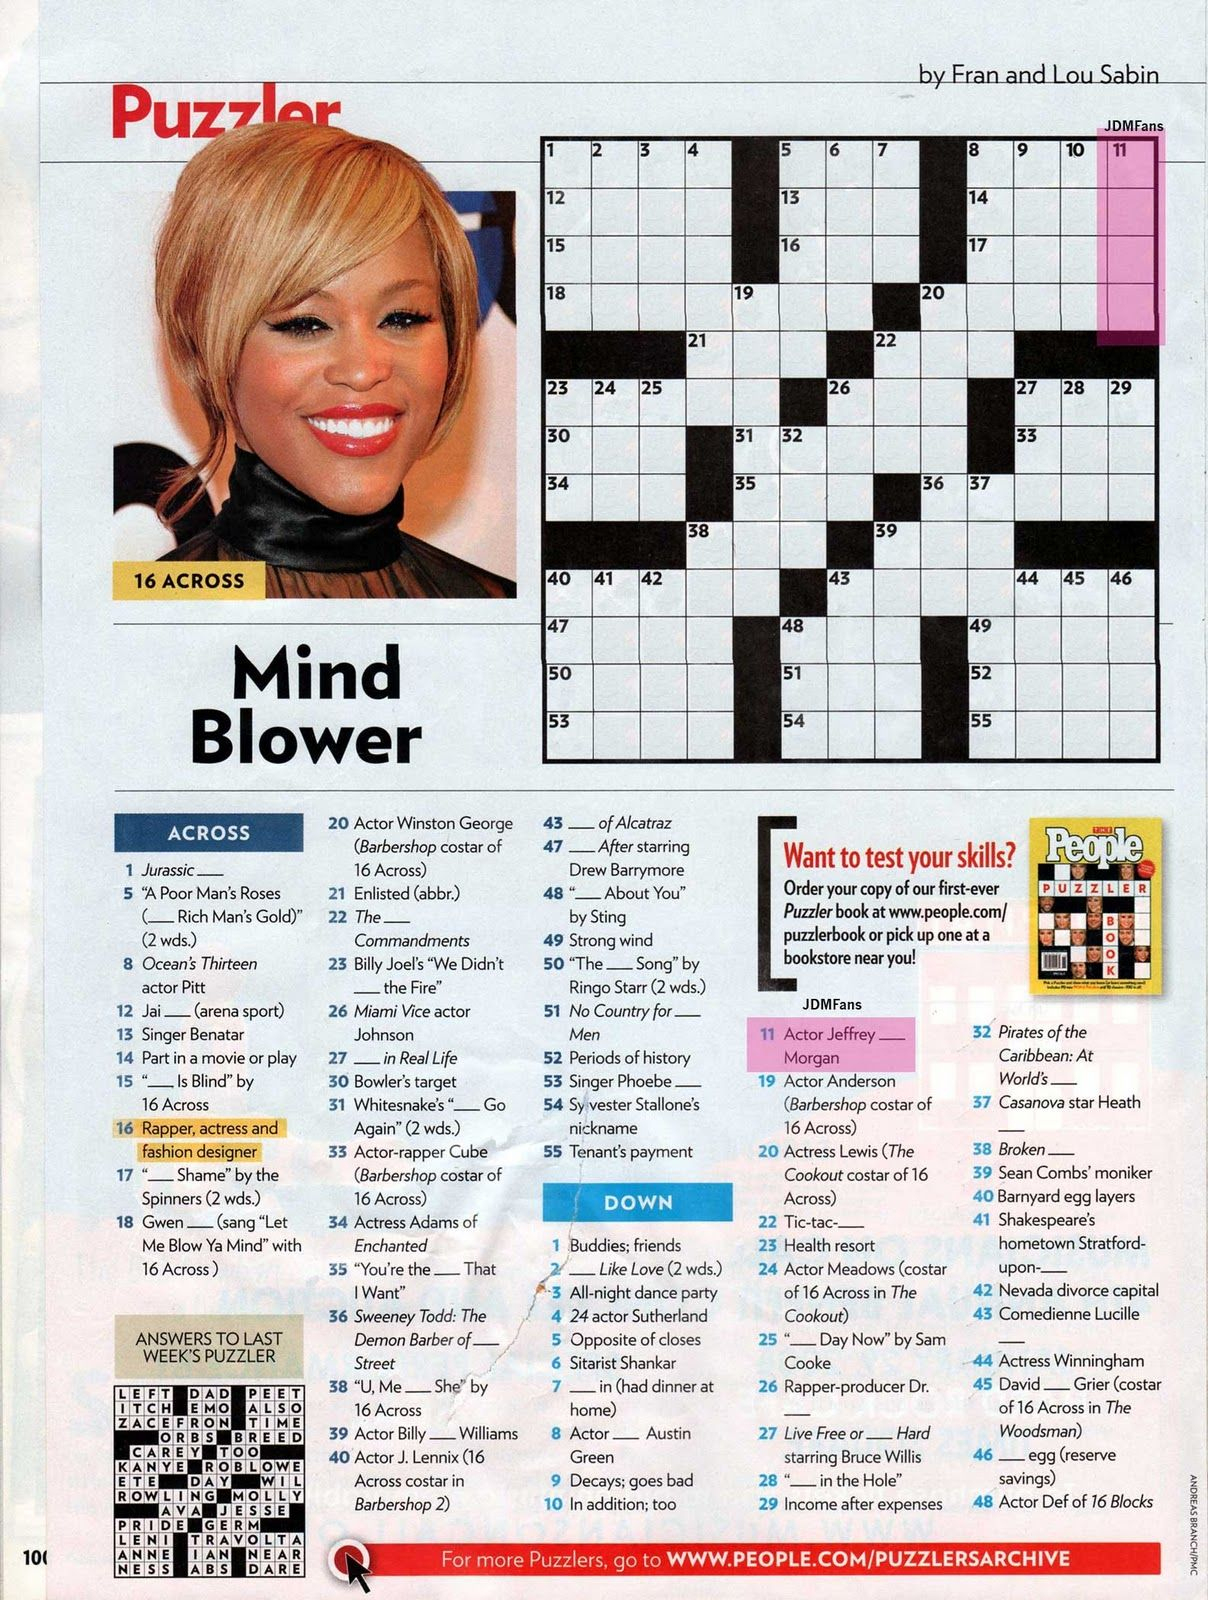 People Magazine Crossword Puzzles To Print | Puzzles In 2019 - Printable Celebrity Crossword Puzzle